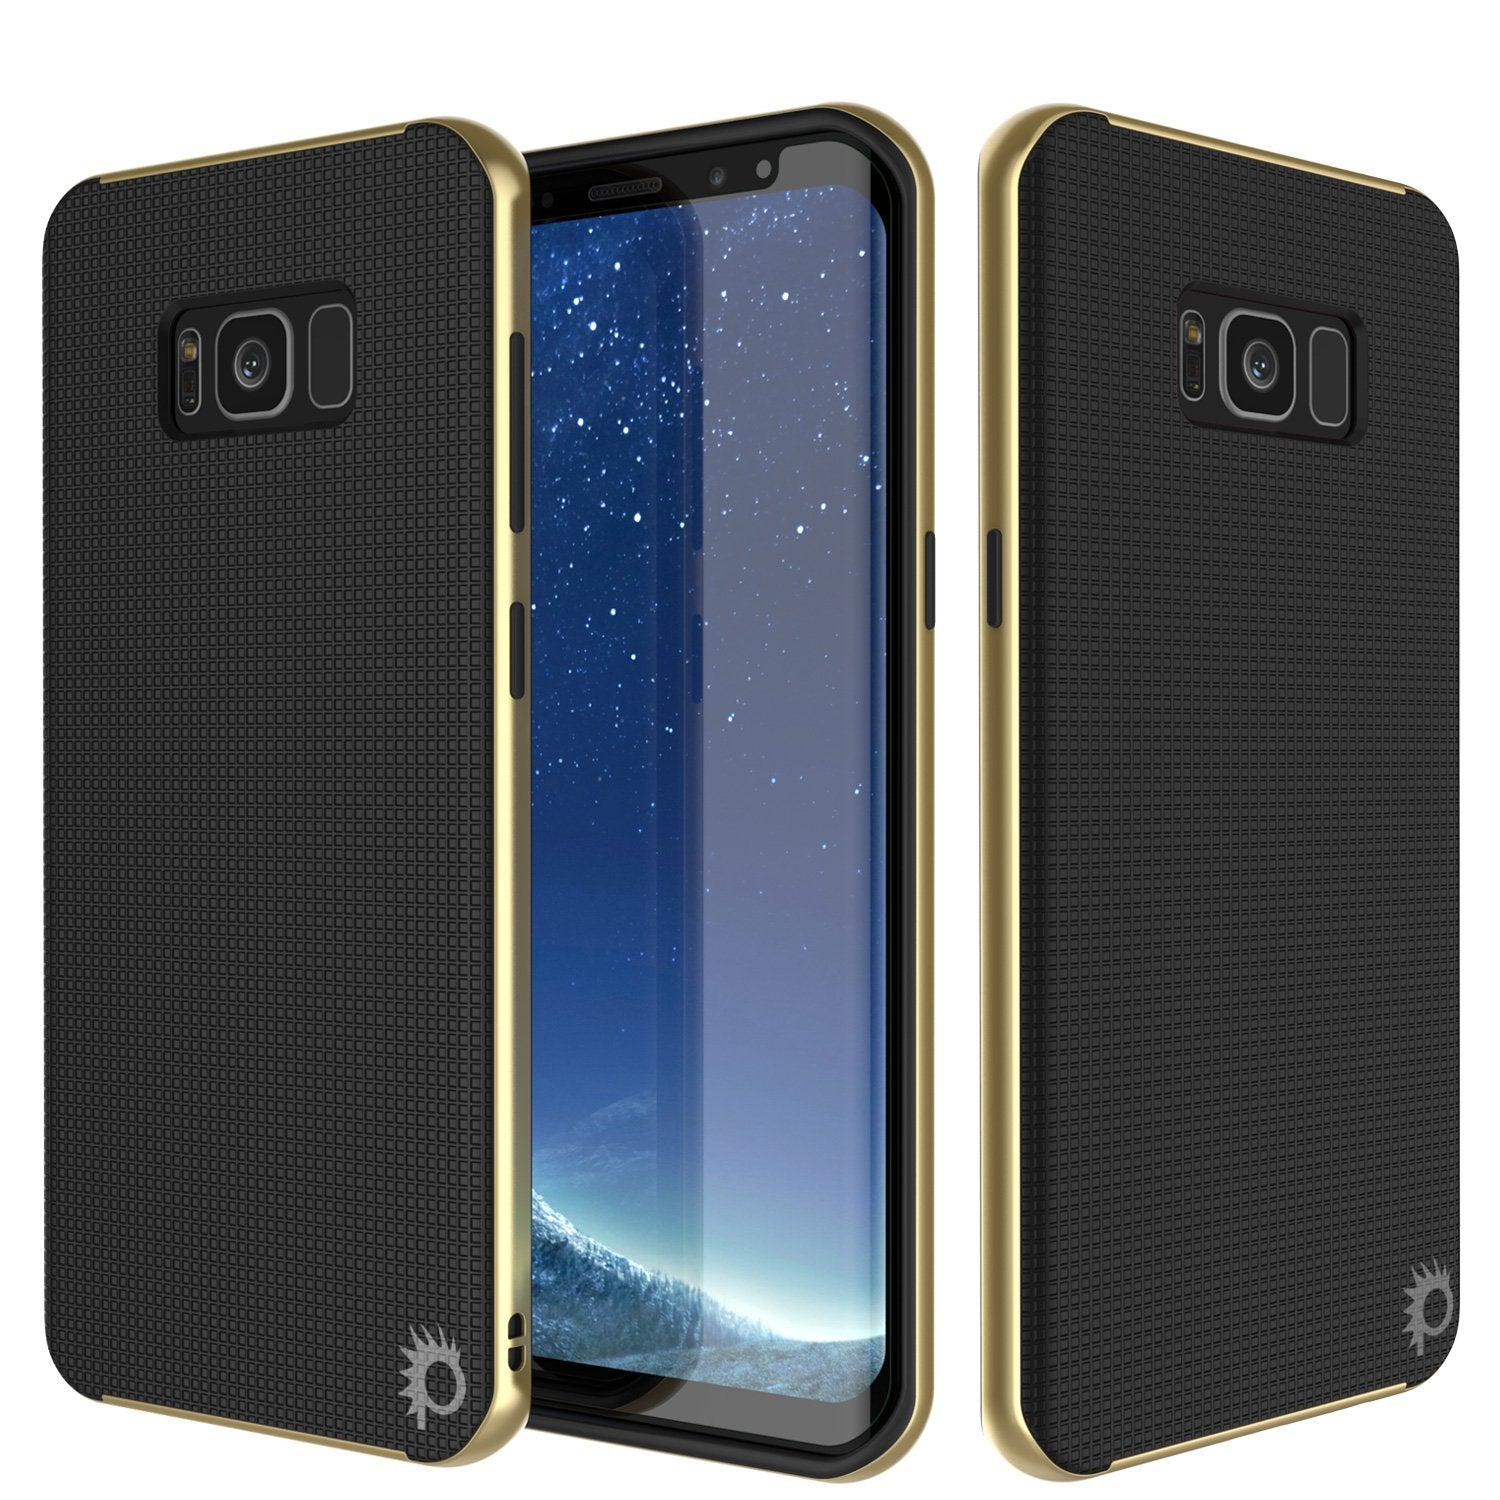 Galaxy S8 Case, PunkCase [Stealth Series] Hybrid 3-Piece Shockproof Dual Layer Cover [Non-Slip] [Soft TPU + PC Bumper] with PUNKSHIELD Screen Protector for Samsung S8 Edge [Gold]